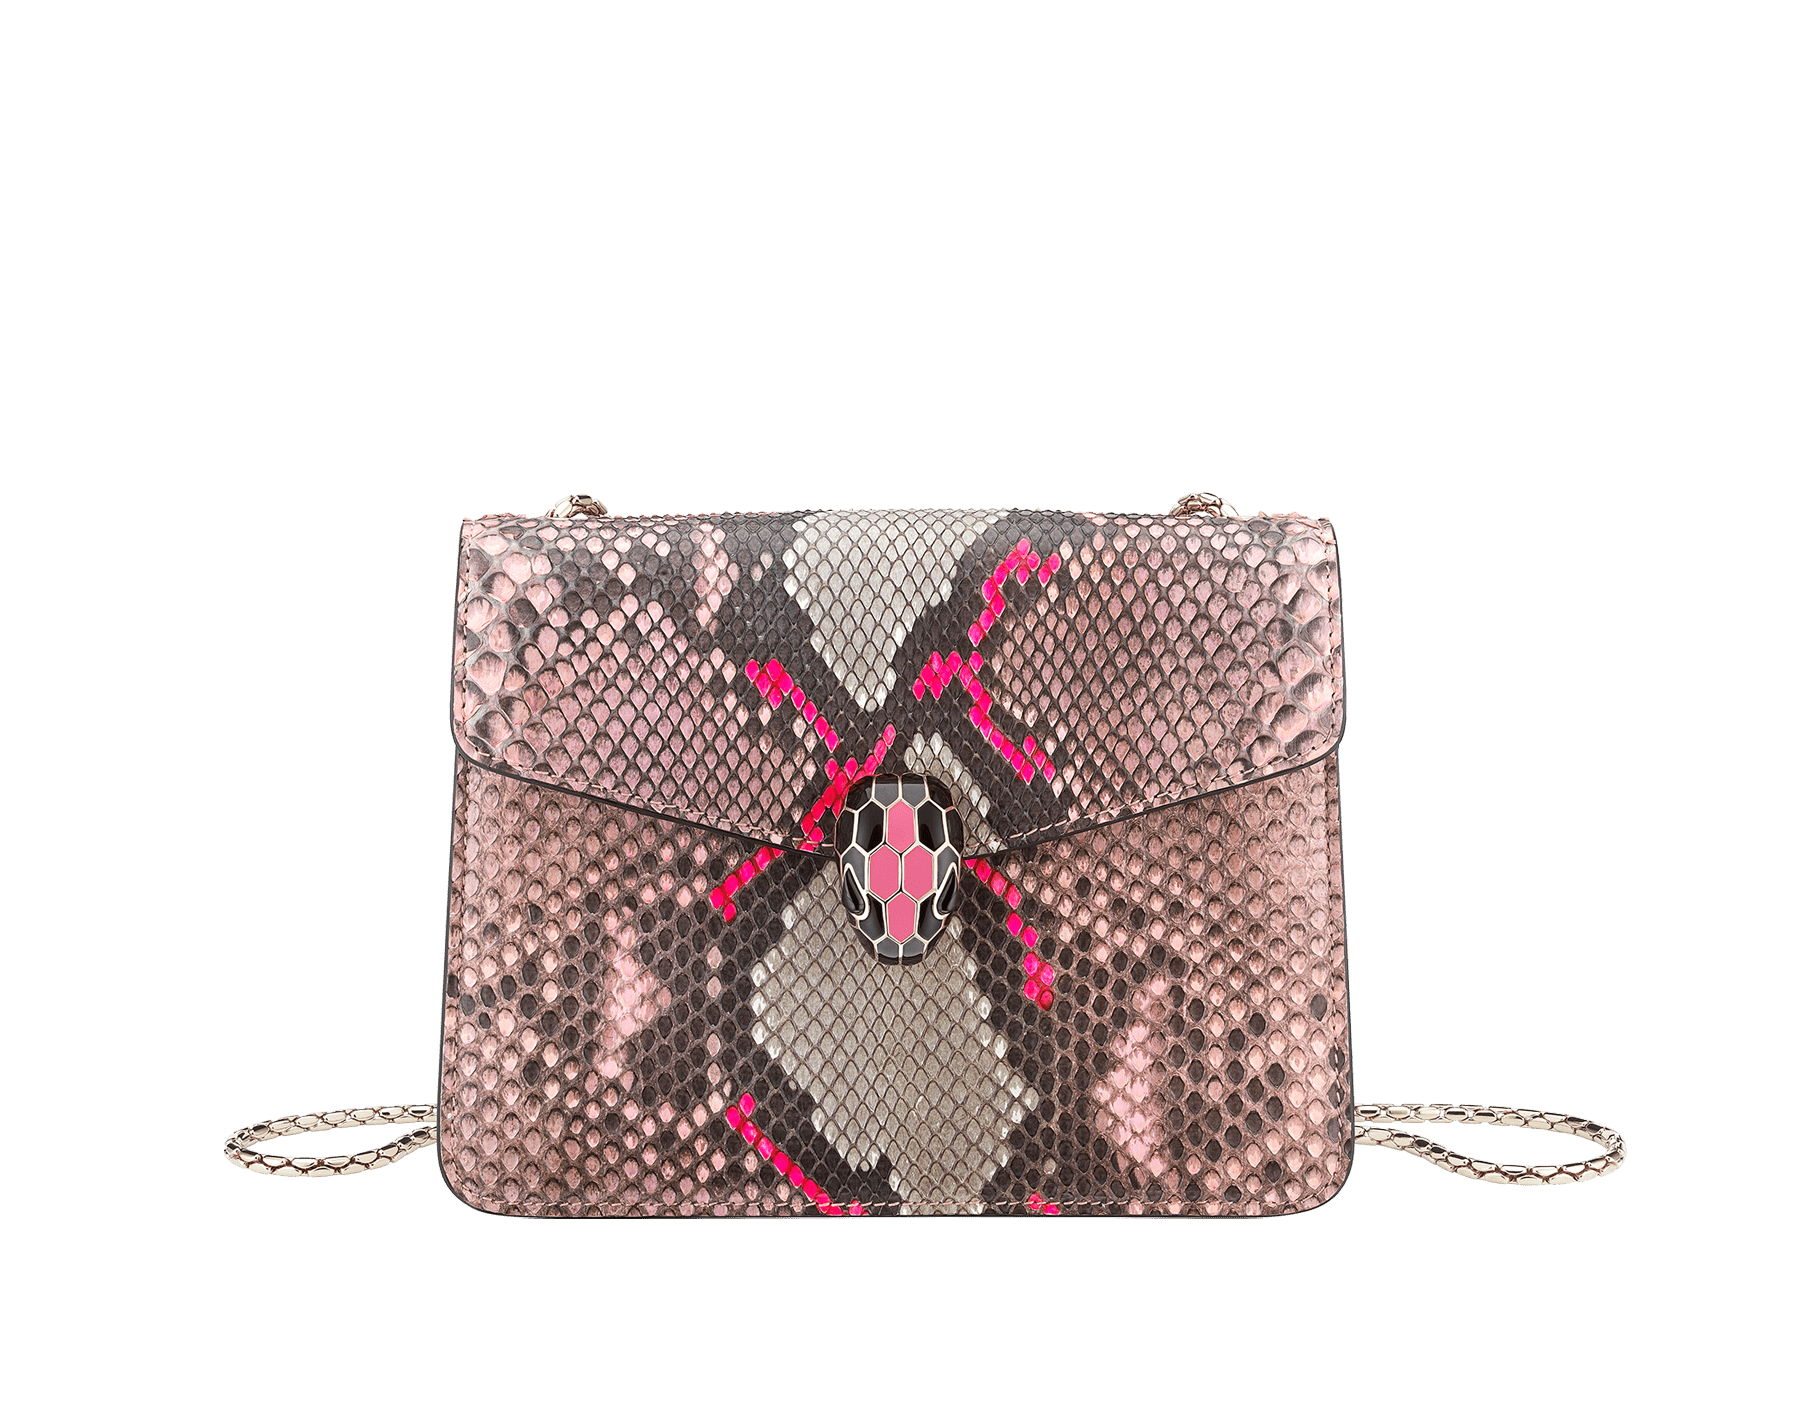 """Serpenti Forever"" crossbody bag in silky coral and flash amethyst Neon python skin. Iconic snake head closure in light gold plated brass enriched with black and flash amethyst enamel and black onyx eyes. 288953 image 2"